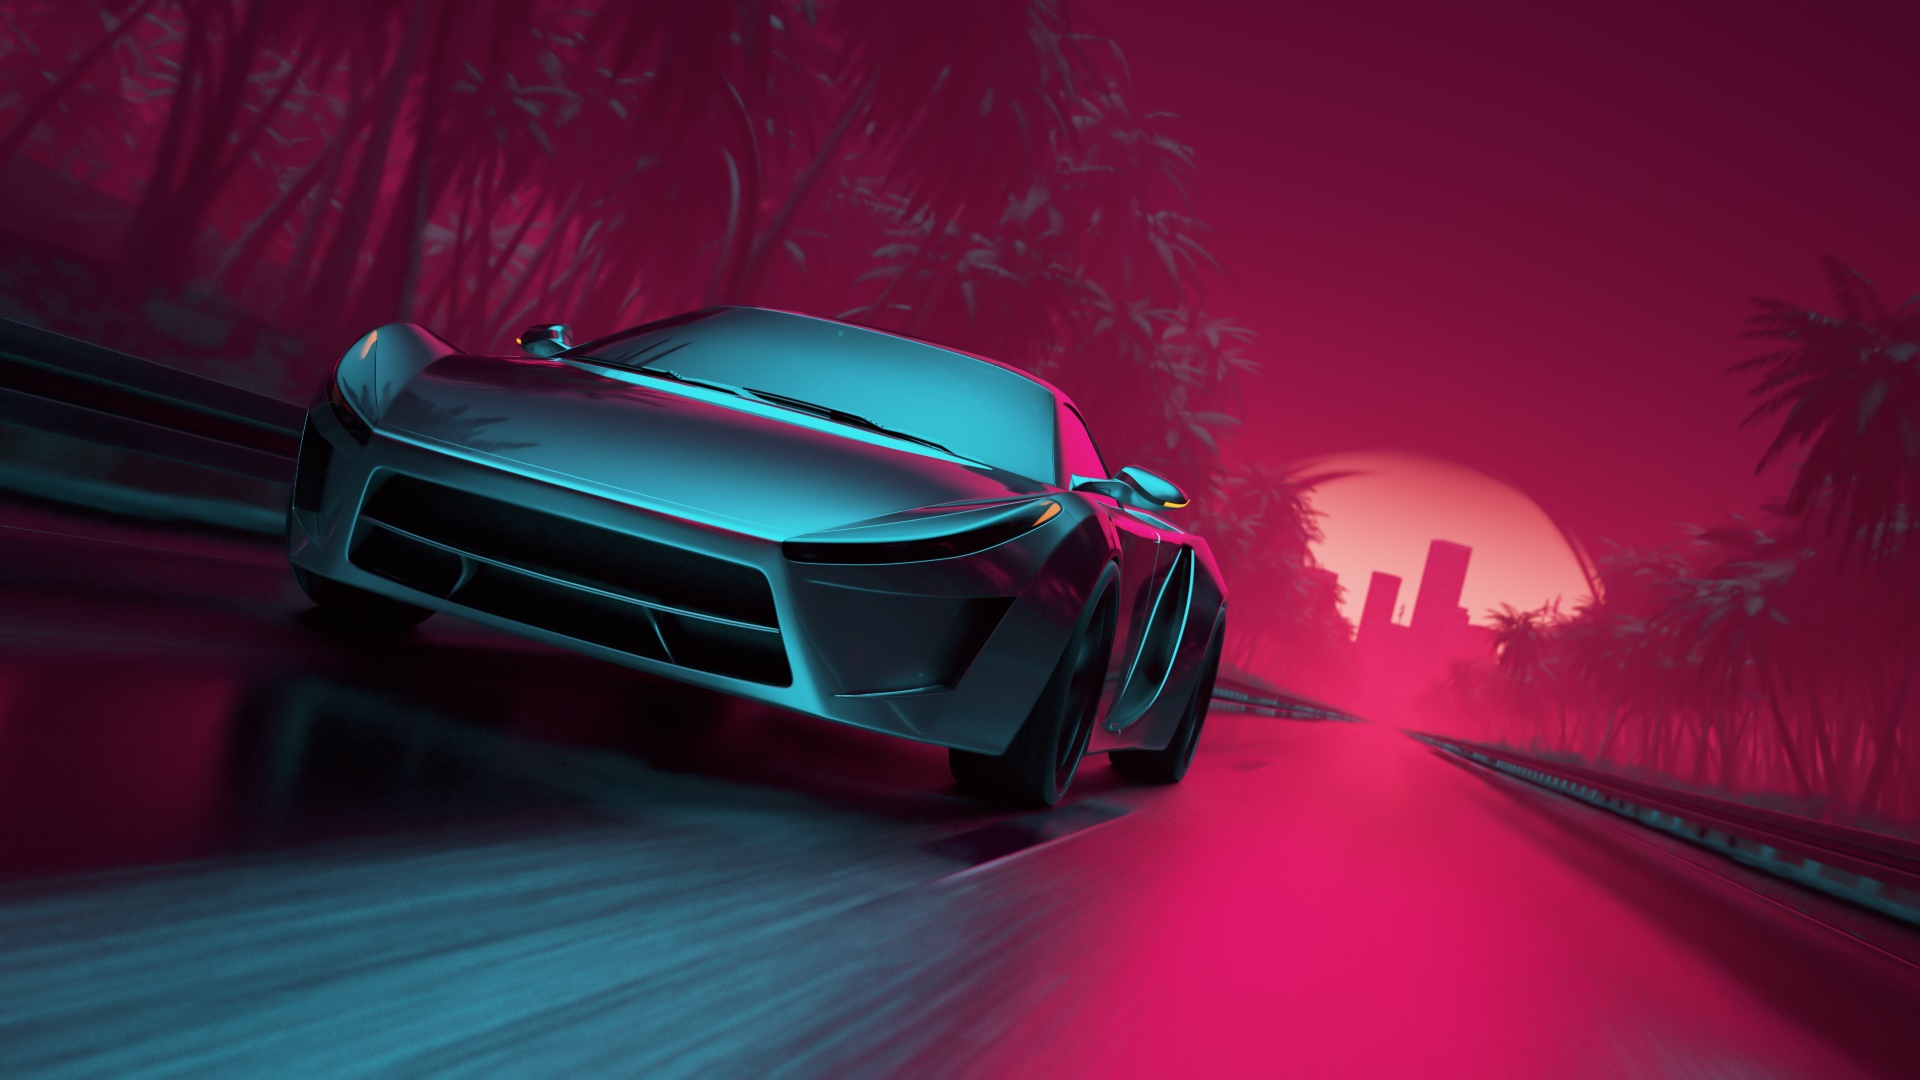 Neon Synthwave Sport Car Hd Artist 4k Wallpapers Images Backgrounds Photos And Pictures